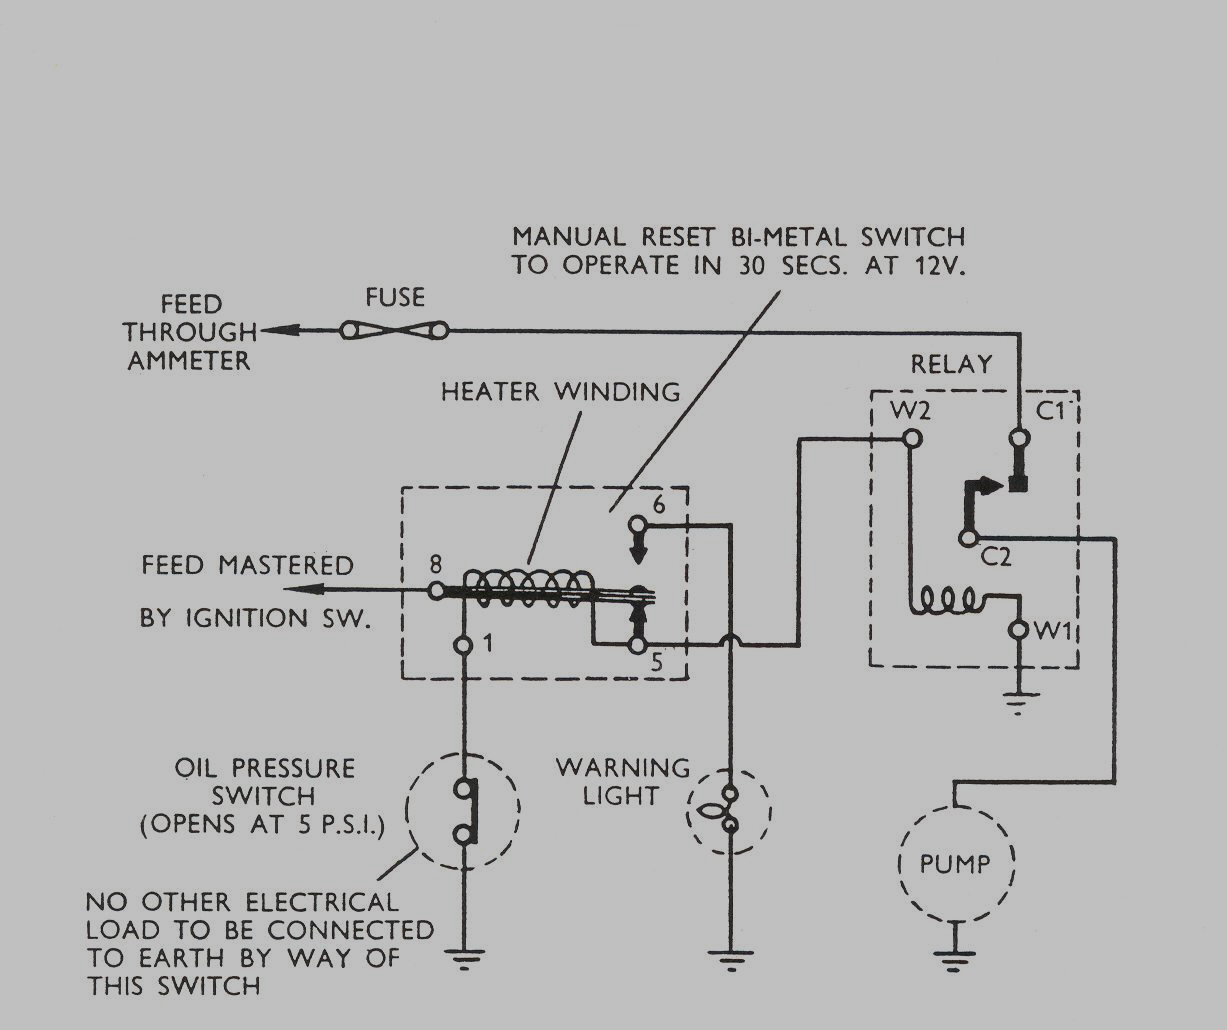 Reset Relay Wiring Great Design Of Diagram 11 Pin Latching With Manual Share The Knownledge Switch Circuit